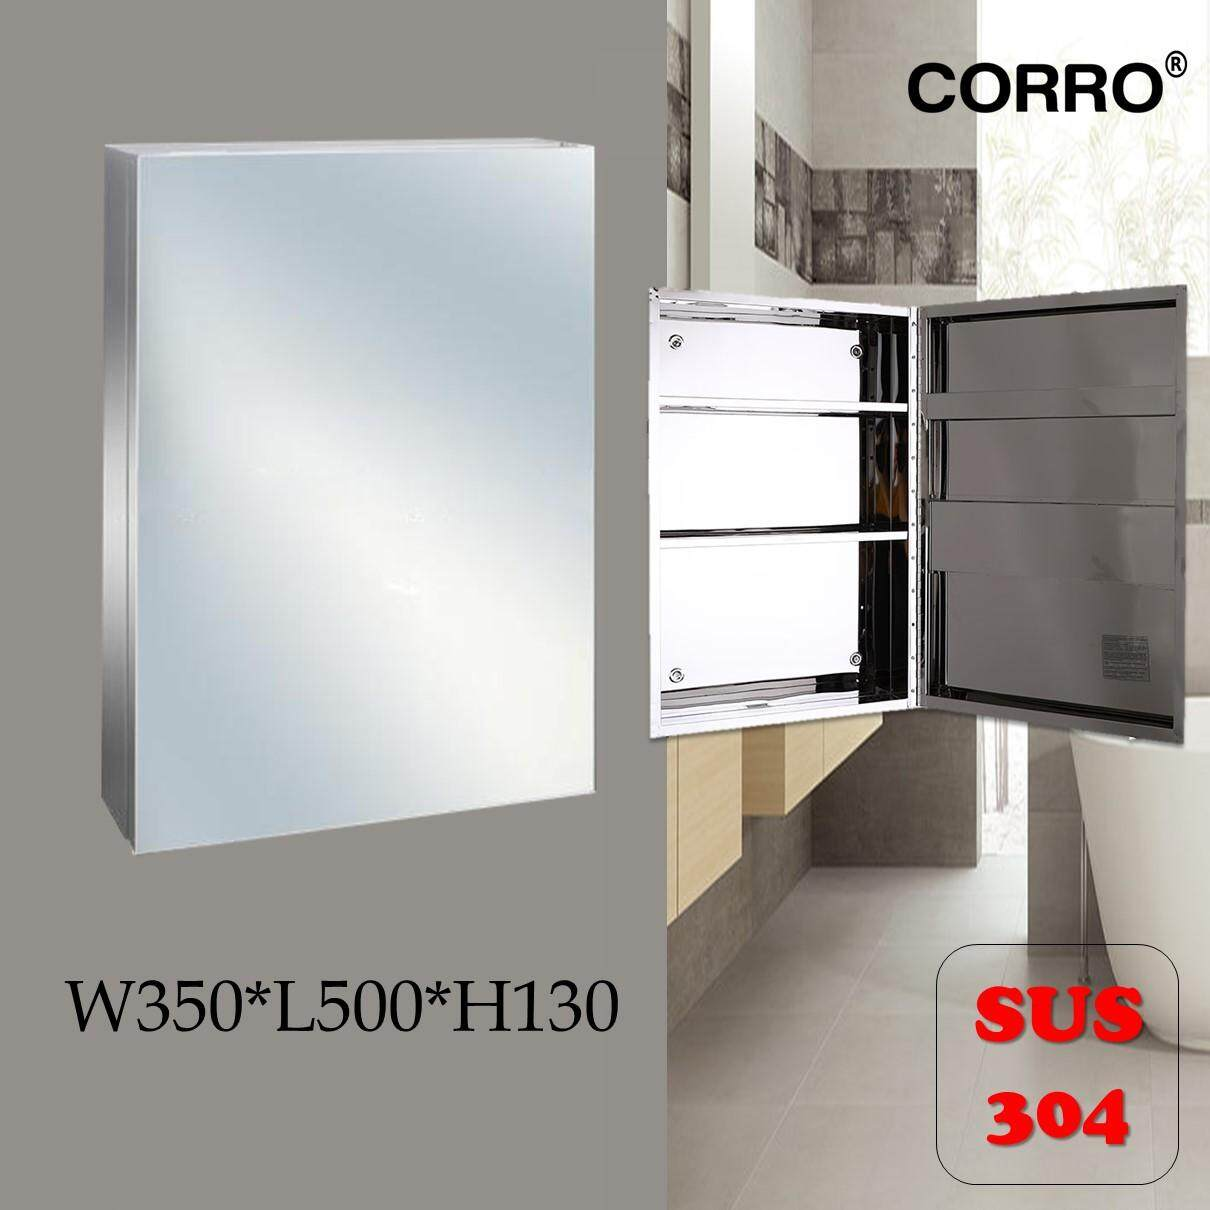 CORRO SUS304 100% Stainless Steel Bathroom Mirror Cabinet - L400*H600*W140